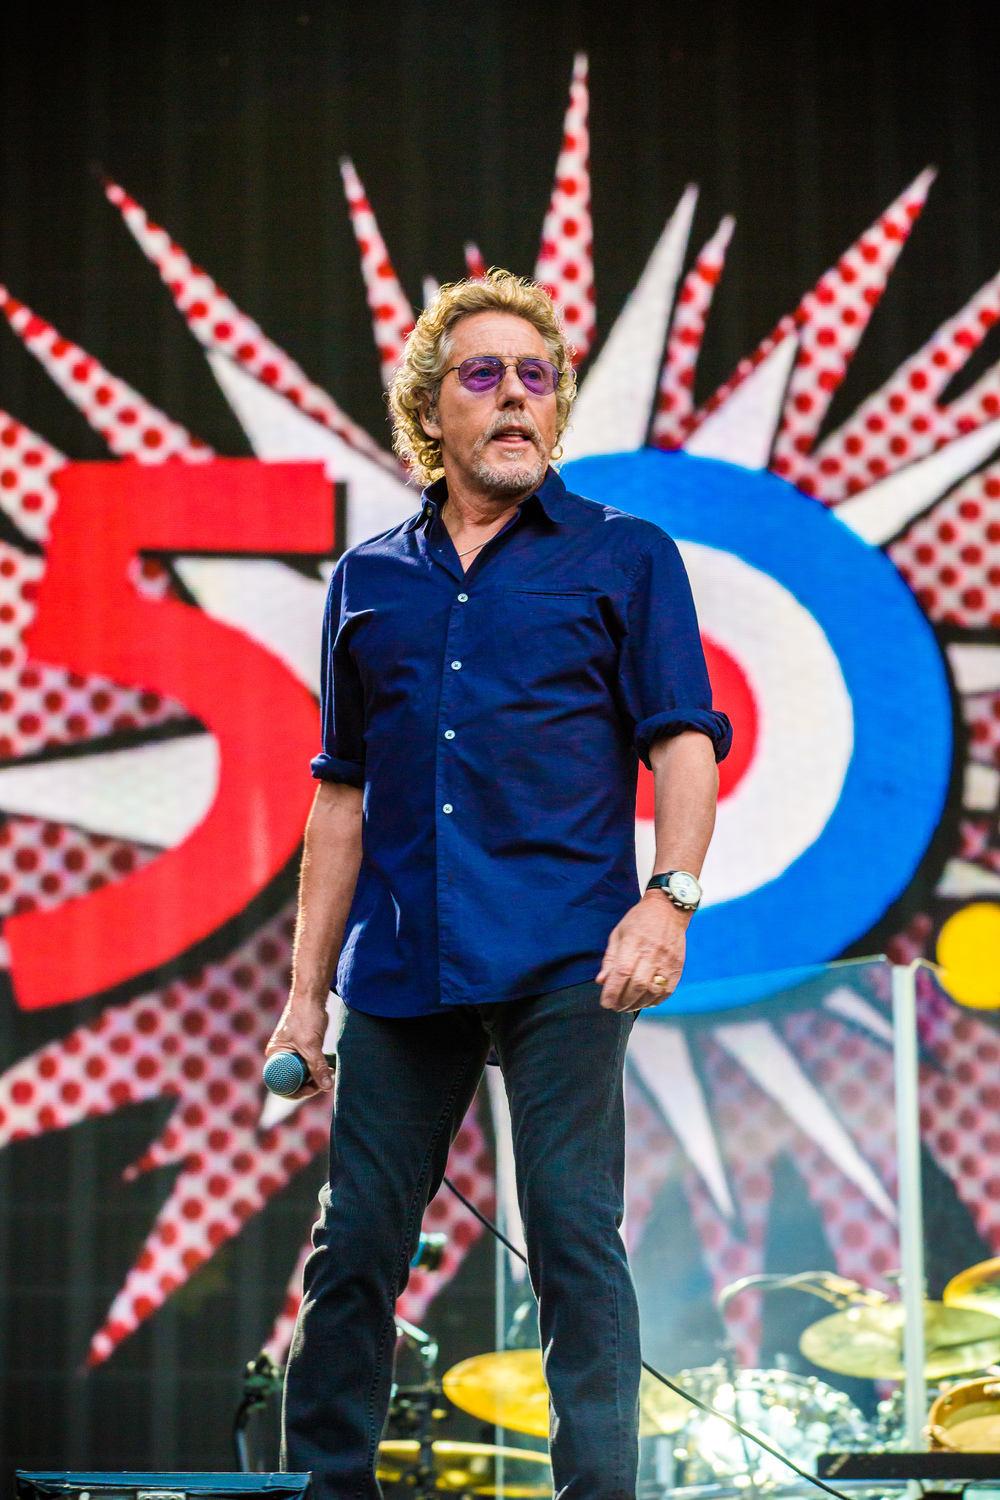 TOM HANCOCK - Main Stage, The Who - 0338.JPG